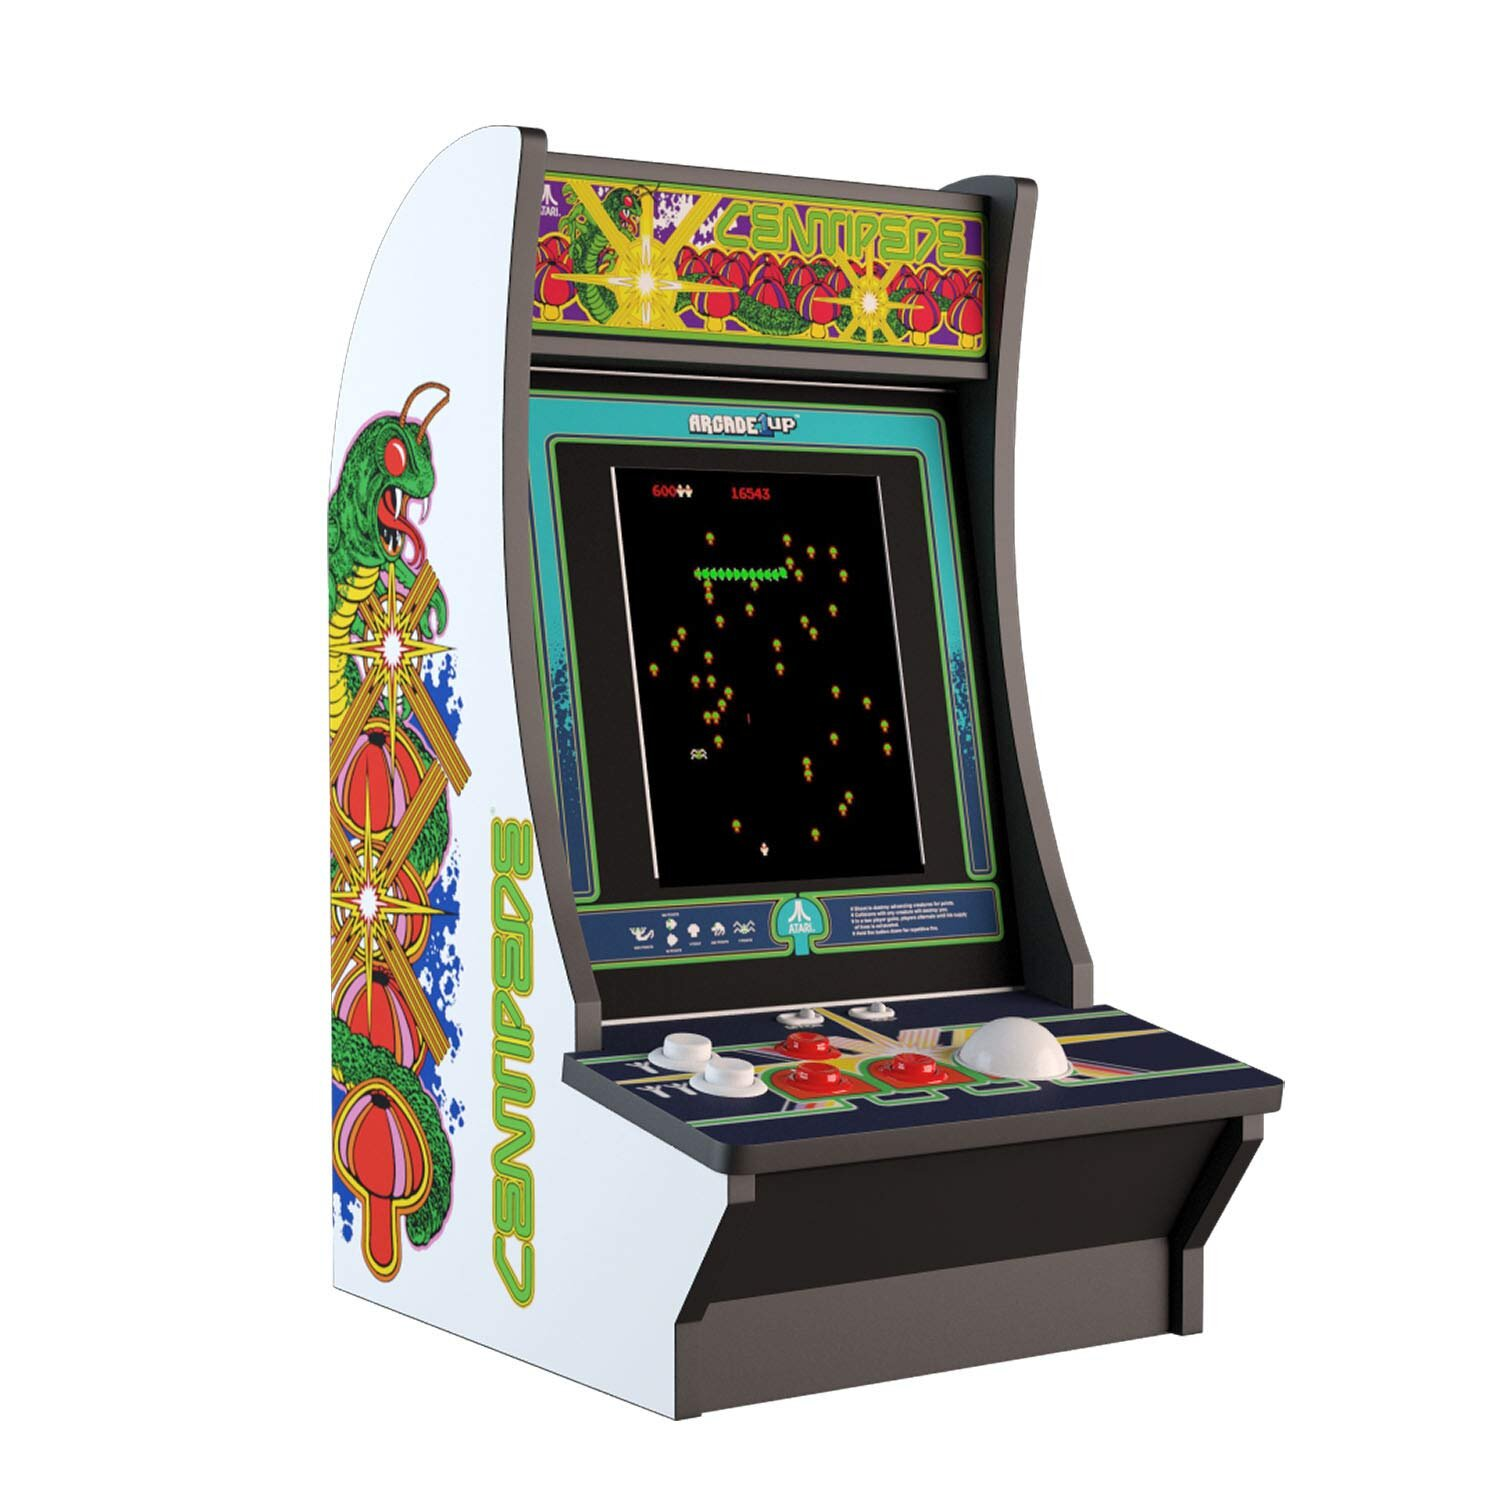 Centipede Arcade1up Countercade Coin Op King